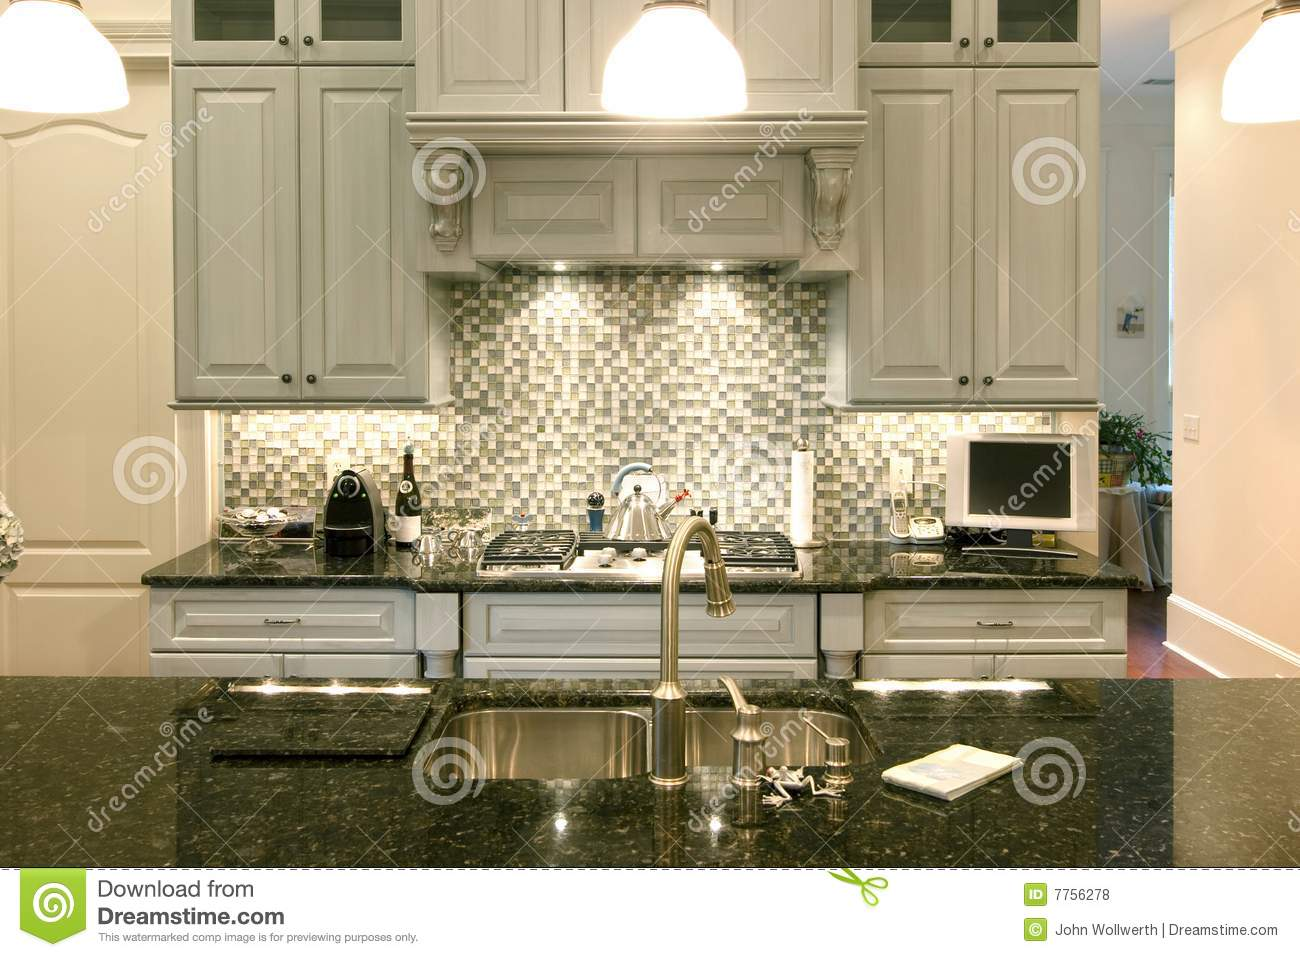 Beautiful backsplash royalty free stock photos image 7756278 - Delightful backsplash designs beautify kitchen ...